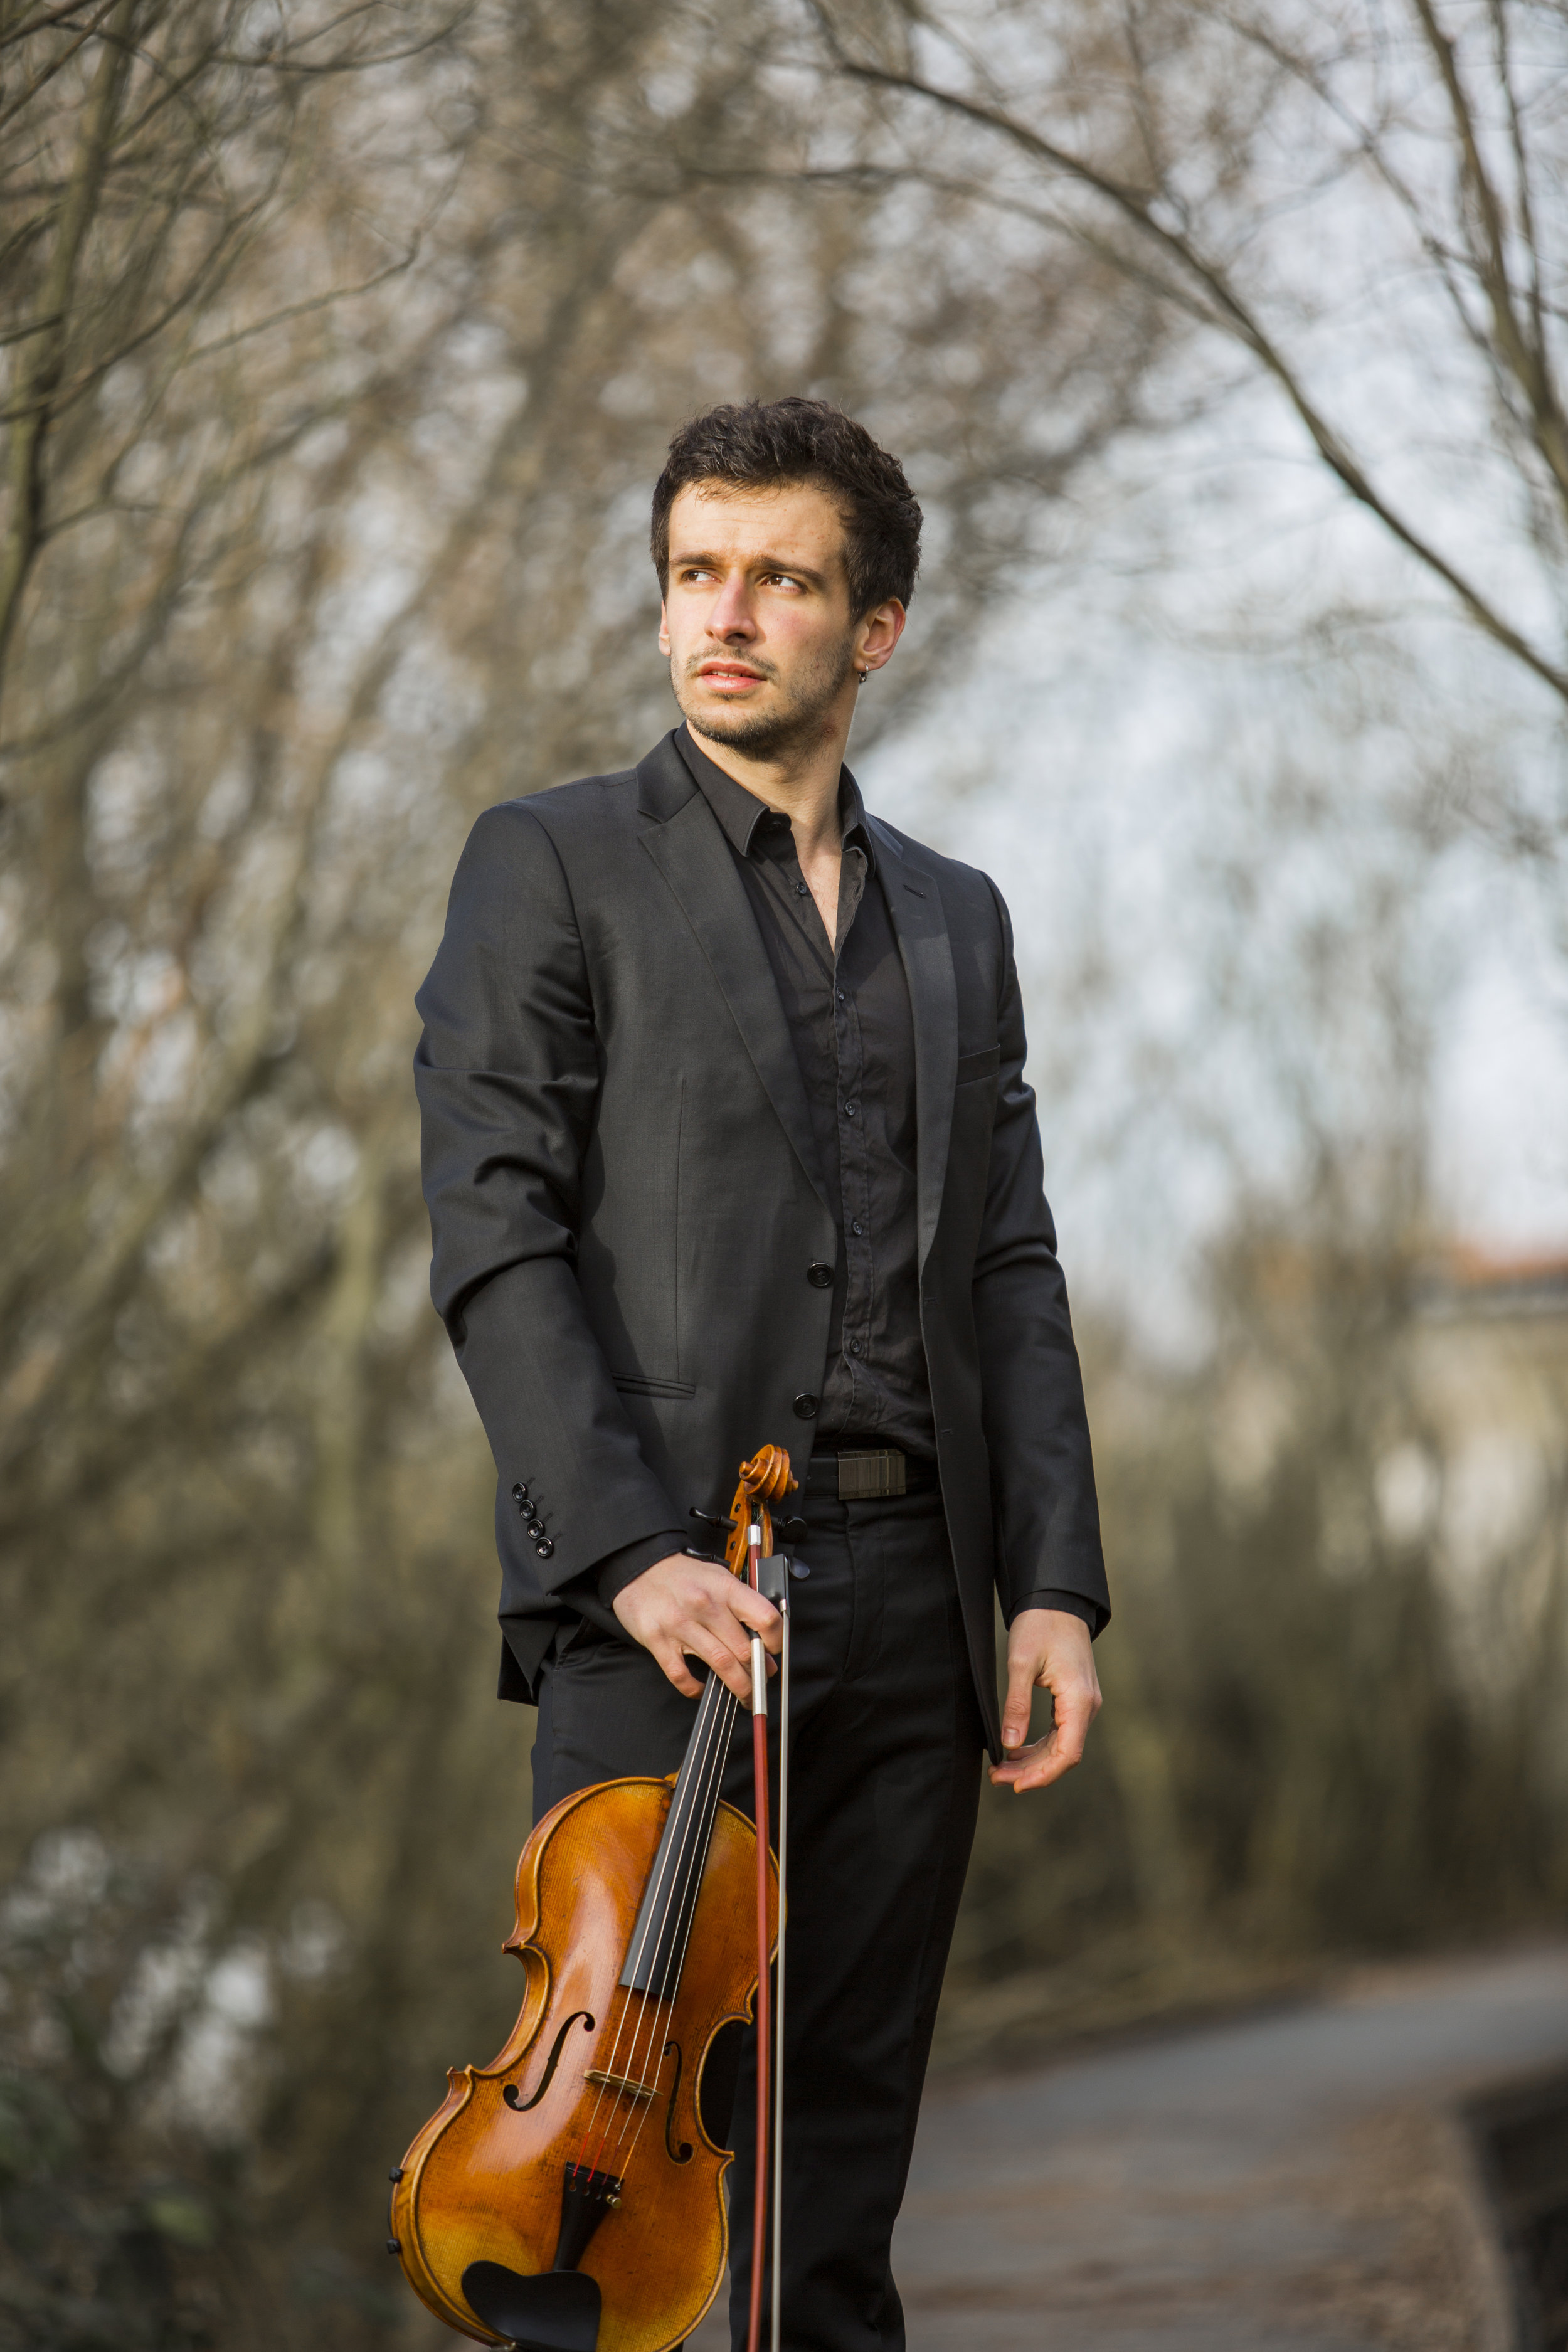 "Gonzalo Martin, Violist… - began his musical training at Bilbao's ""Conservatorio Juan Crisostomo de Arriaga"" where he studied under the tutelage of Rosa Gutierrez. He has also received instruction from Jonathan Brown, Silvia Simionescu, Kim Kashkashian, Nobuko Imai and many others. An avid chamber musician and soloist, Gonzalo has performed in some of the most reputed concert halls of Europe, including Gewandhaus Leipzig, Musikverein Wien and Sendesaal Bremen. He has performed as a soloist with the Bilbao Symphonic Orchestra, the Deusto Chamber Orchestra, and in the ""EIO"" youth orchestra's Venezuela and Brussels tours. He is a top prizewinner in the 2017 International Anton Rubinstein Competition for Viola, the Concurso Jovenes musicos de Euskadi, as well as a two-time winner of the Ensemblewettbewerb HMT Leipzig. Gonzalo has participated in chamber music festivals and fellowships throughout Europe and the United States, including ""Lenk musiksommer,"" ""Presjovem,"" the Prussia Cove International Musicians Seminar, the ""Harmos Festival"" concerts, and the 2017 and 2018 Ravinia's Steans' Music Institute. He received the scholaship ""Beca de la Diputación de Bizkaia"" for three years and is currently completing his Masters of Music at the HMT Leipzig under the tutelage of Professor Tatjana Masurenko."